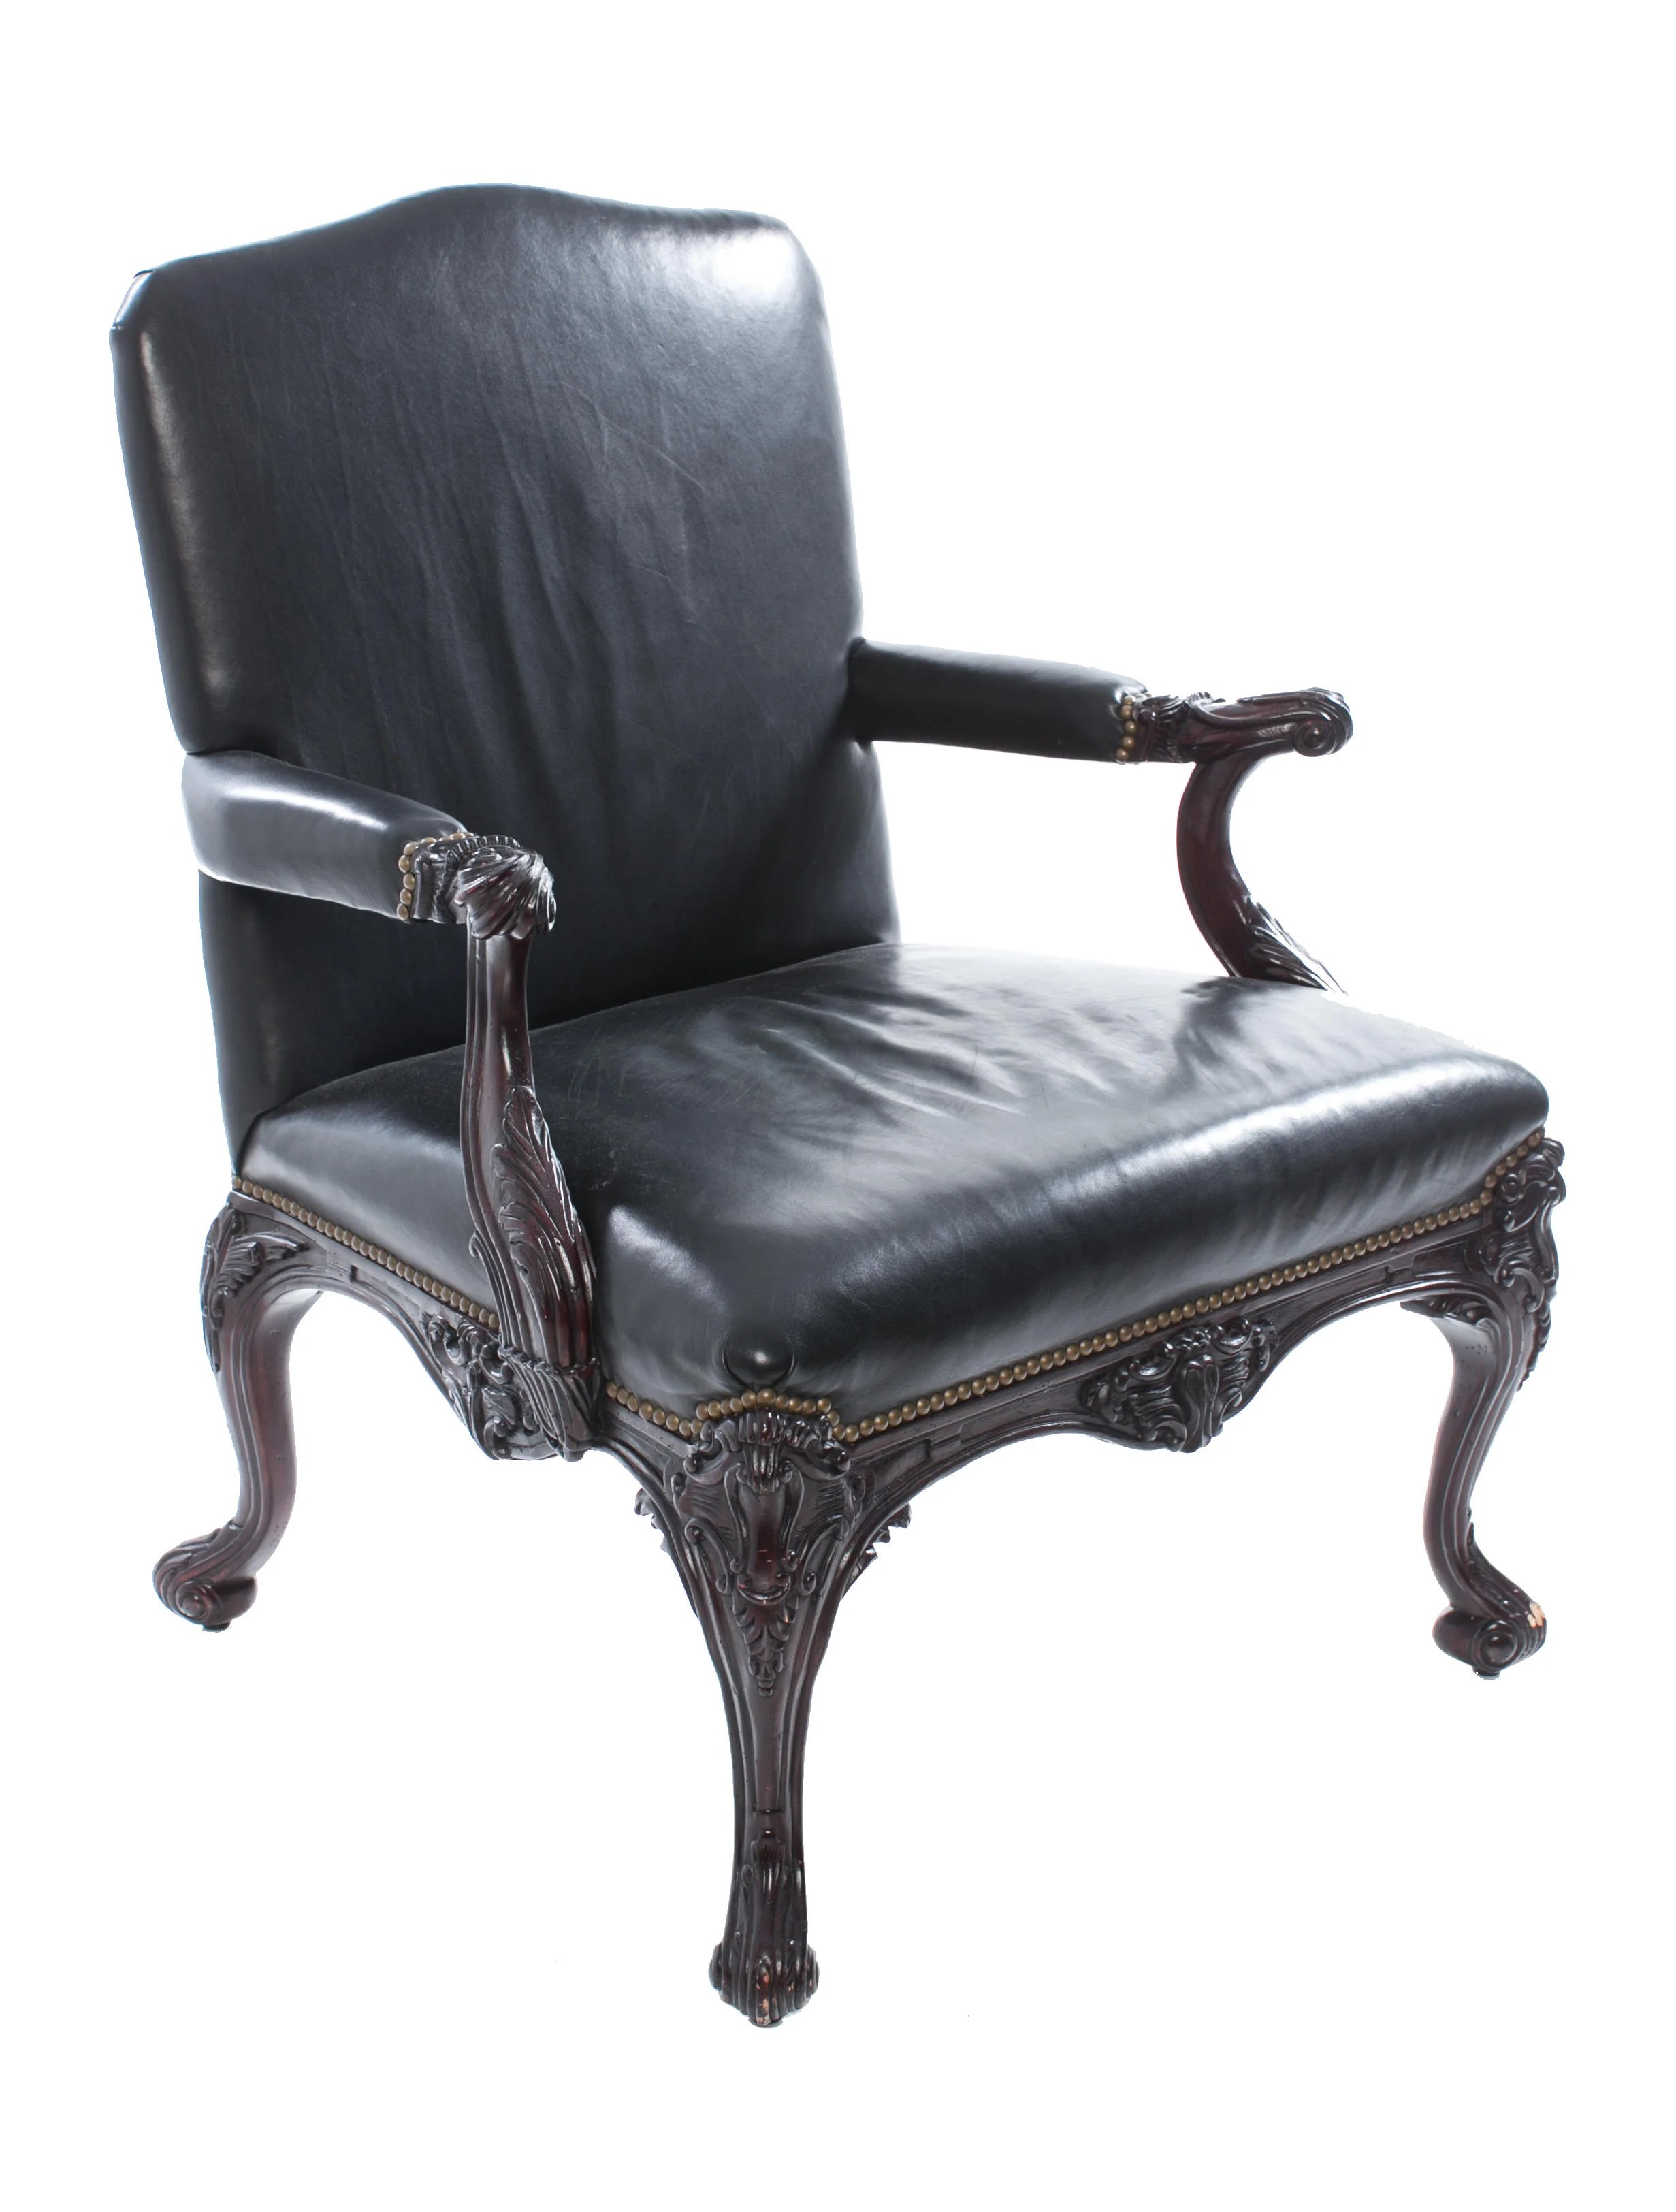 ralph lauren chair diy swing leather furniture wyg20260 the